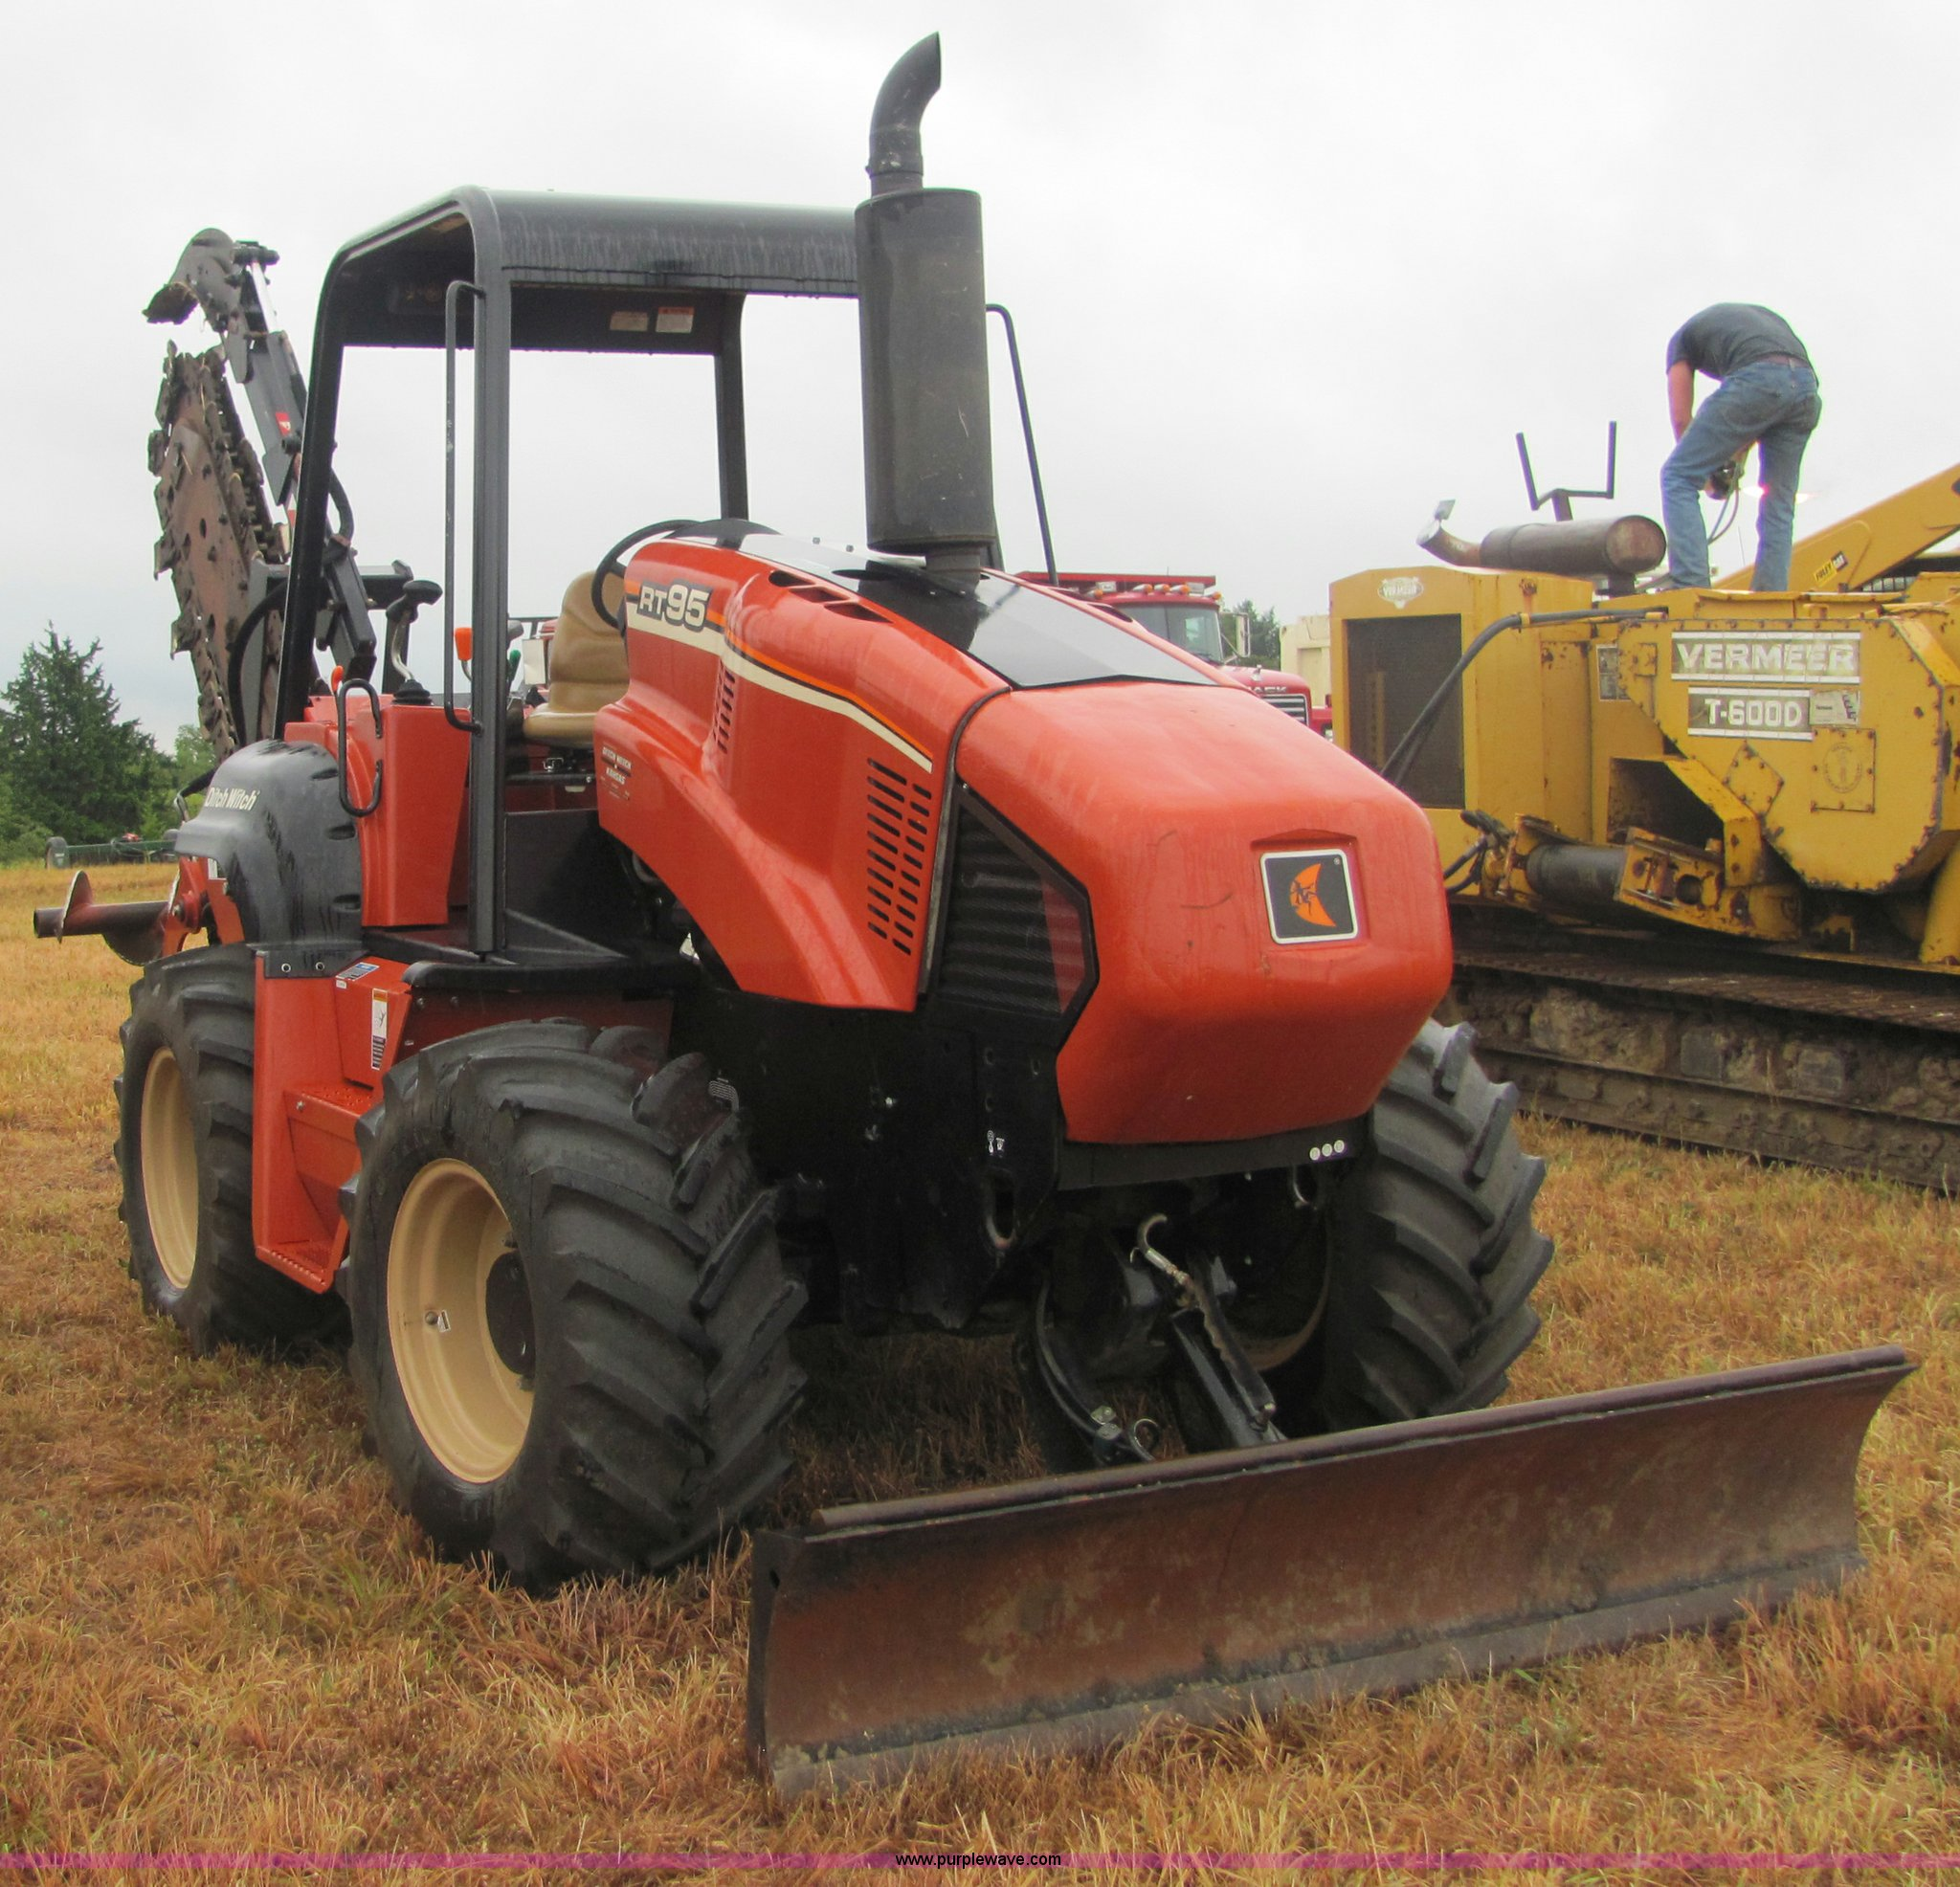 2008 Ditch Witch RT95 trencher | Item 4844 | SOLD! October 1... on